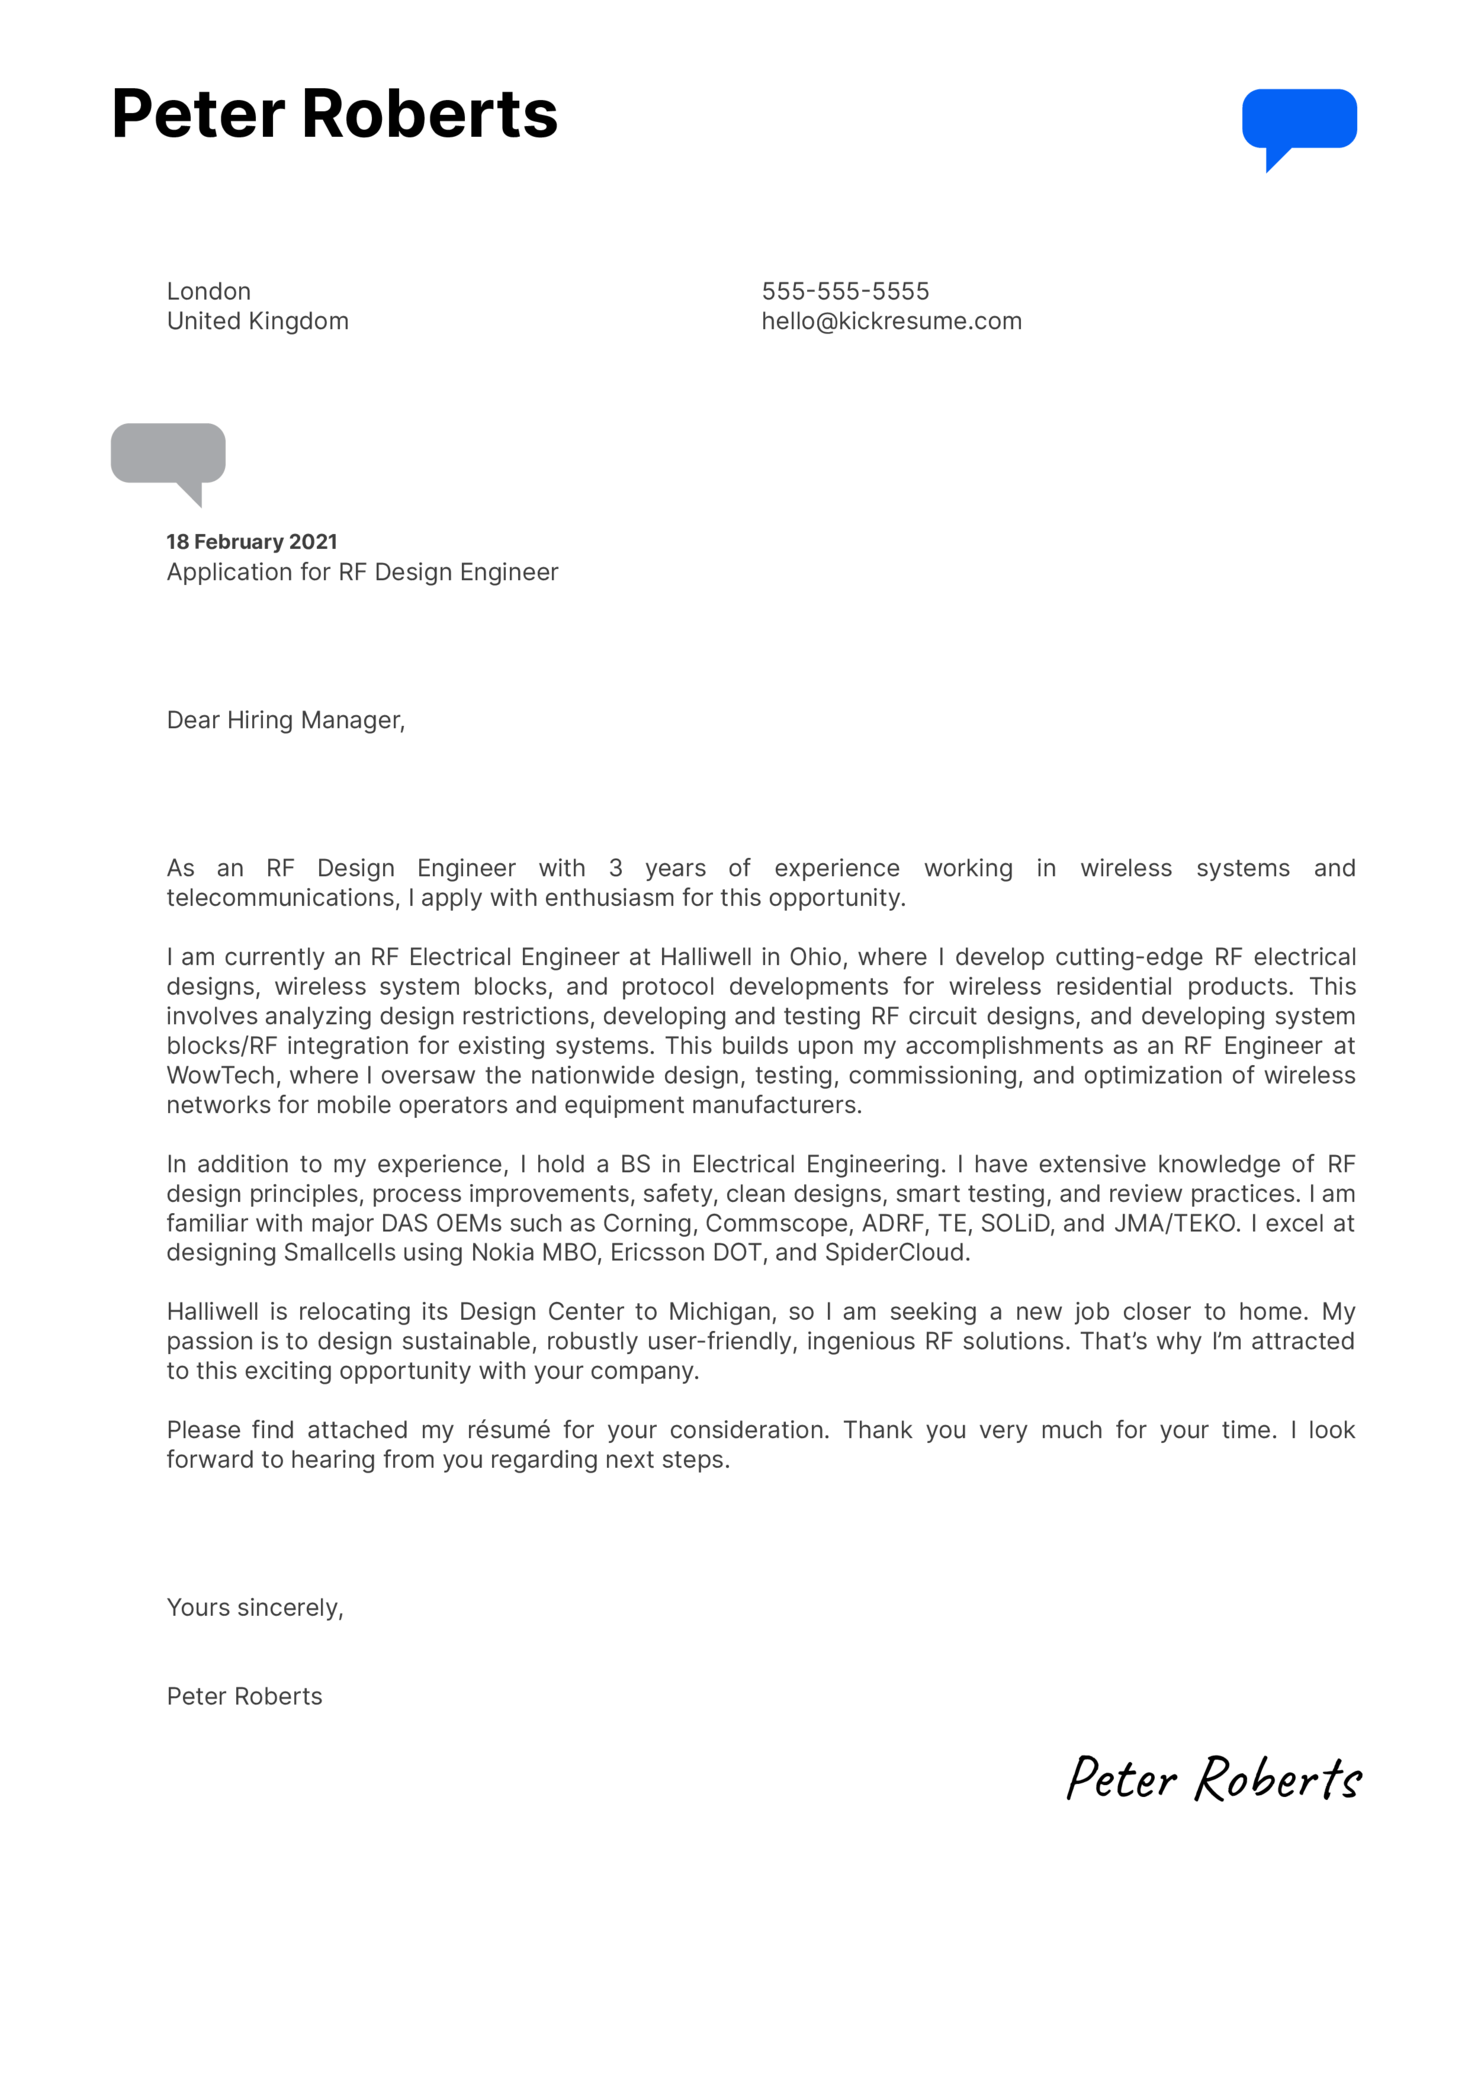 RF Design Engineer Cover Letter Sample